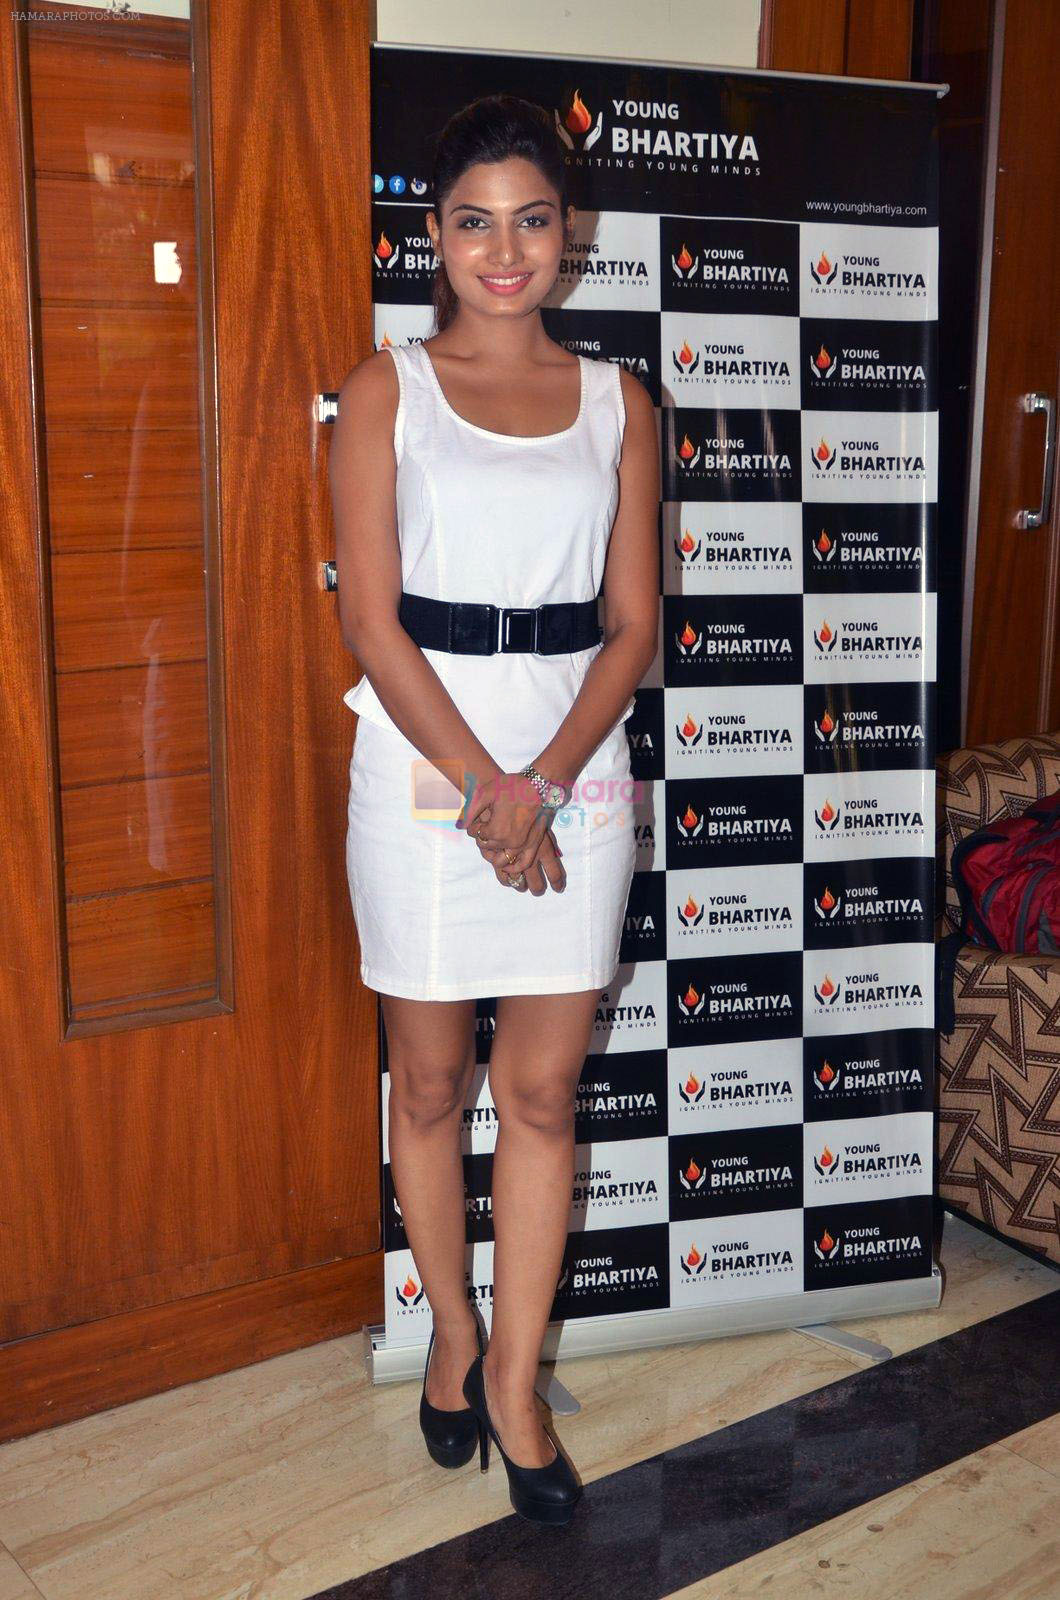 Avani Modi during the launch of Young Bhartiya Foundation, an initiative by Ameya Pratap Singh in Mumbai, India on June 18, 2016